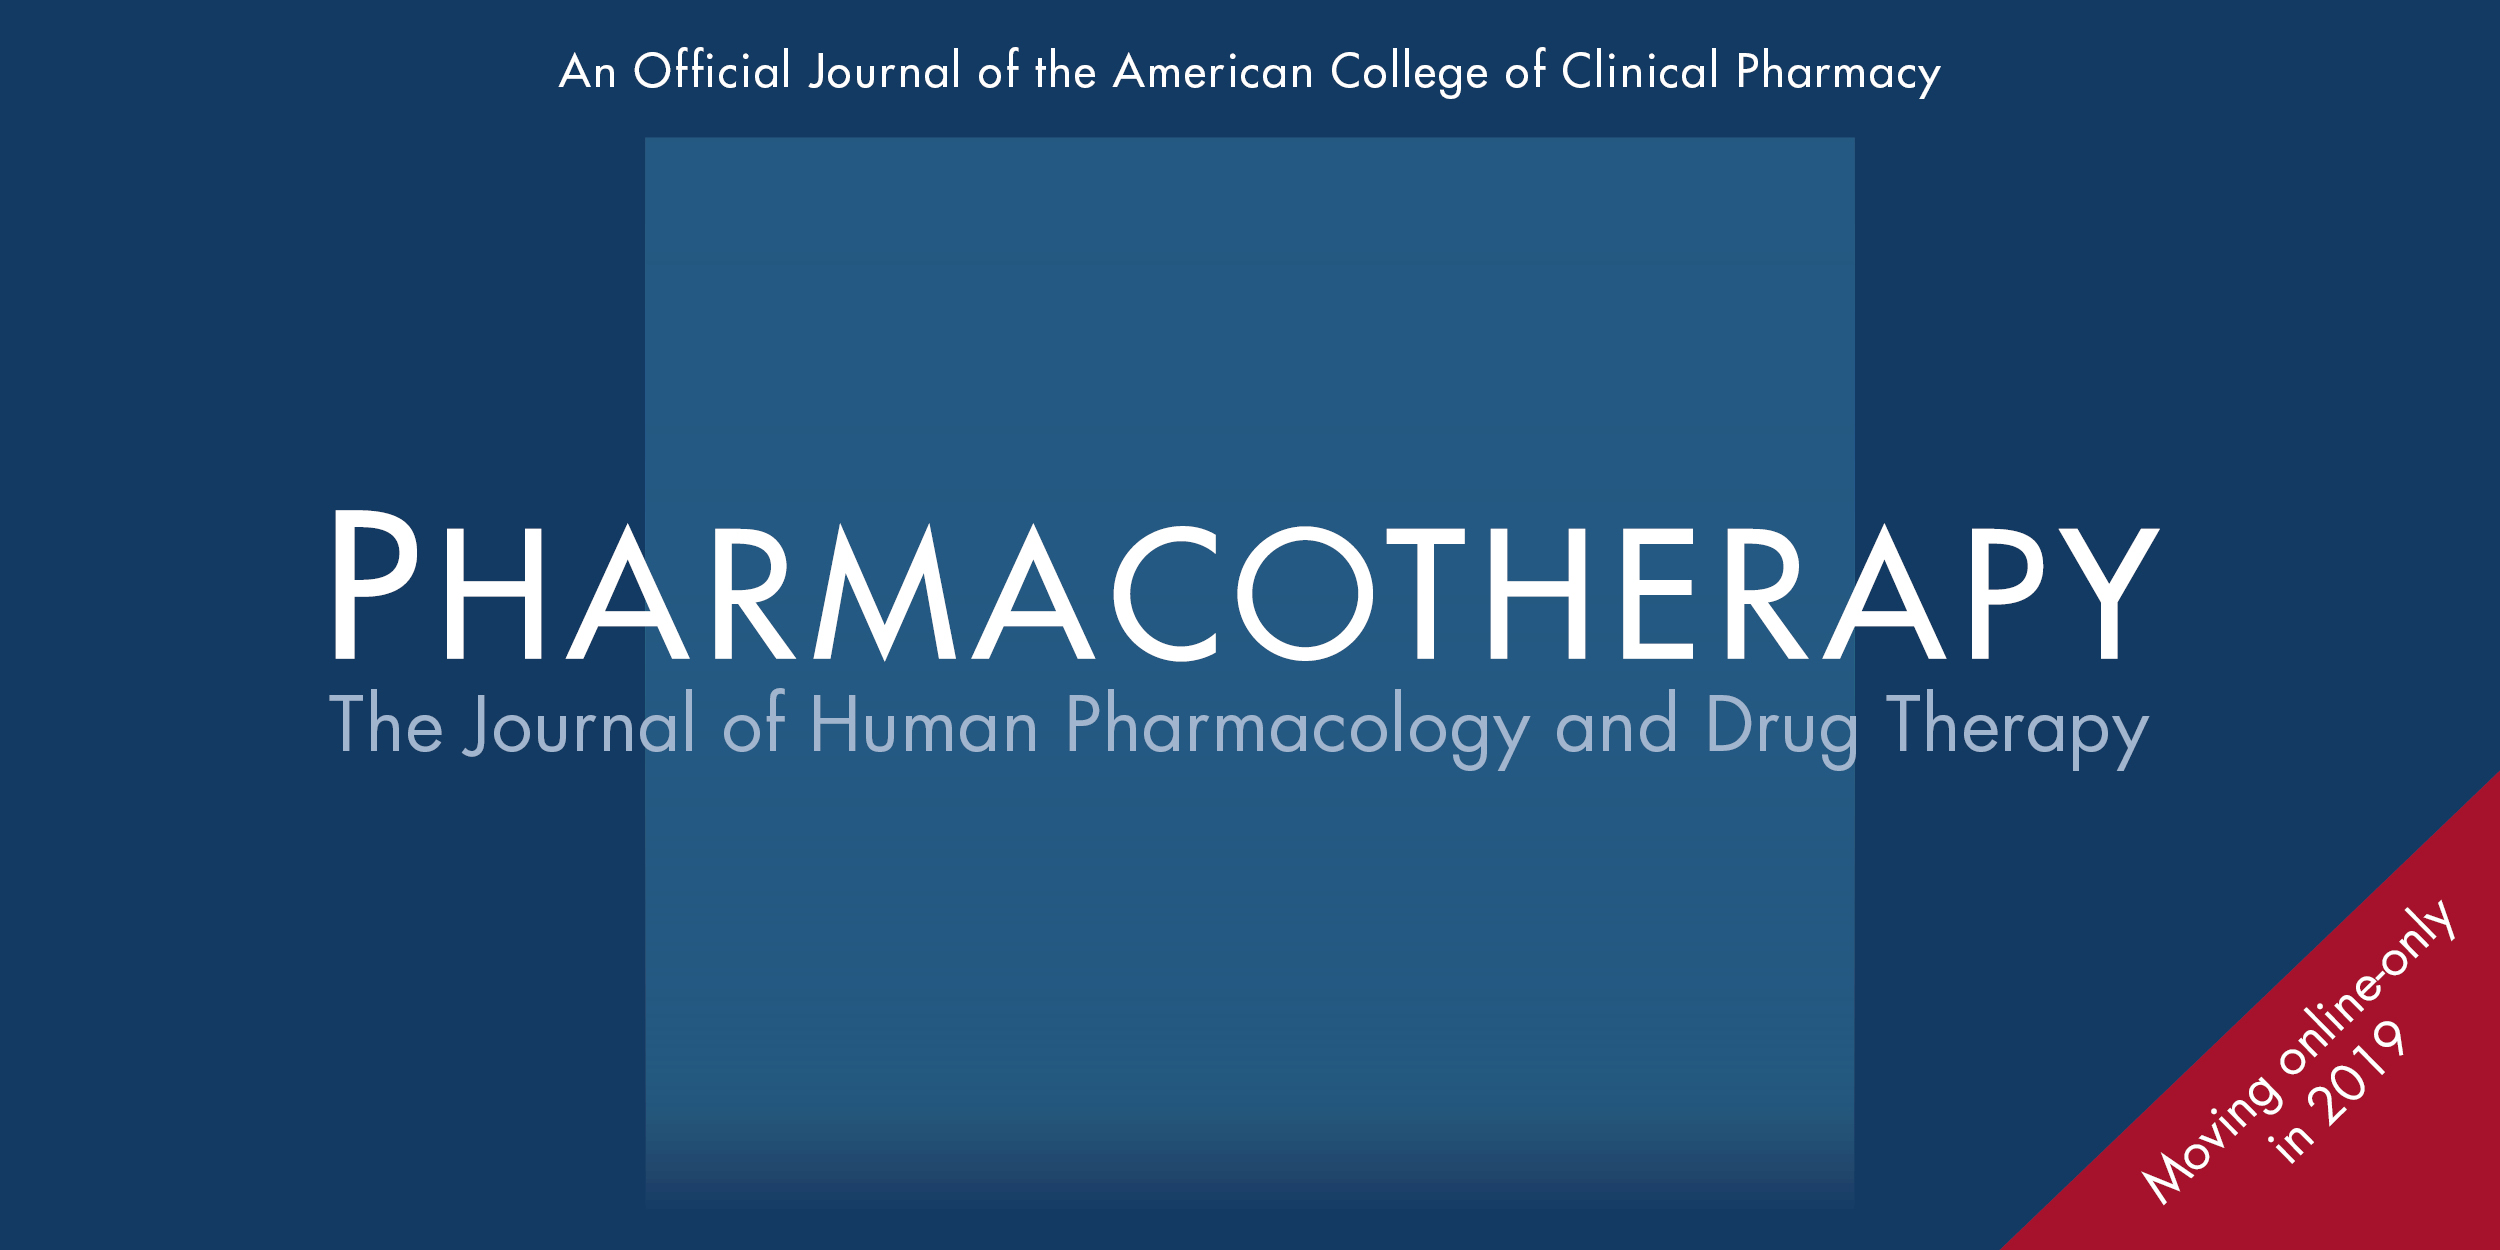 Pharmacotherapy will be online-only in 2019.